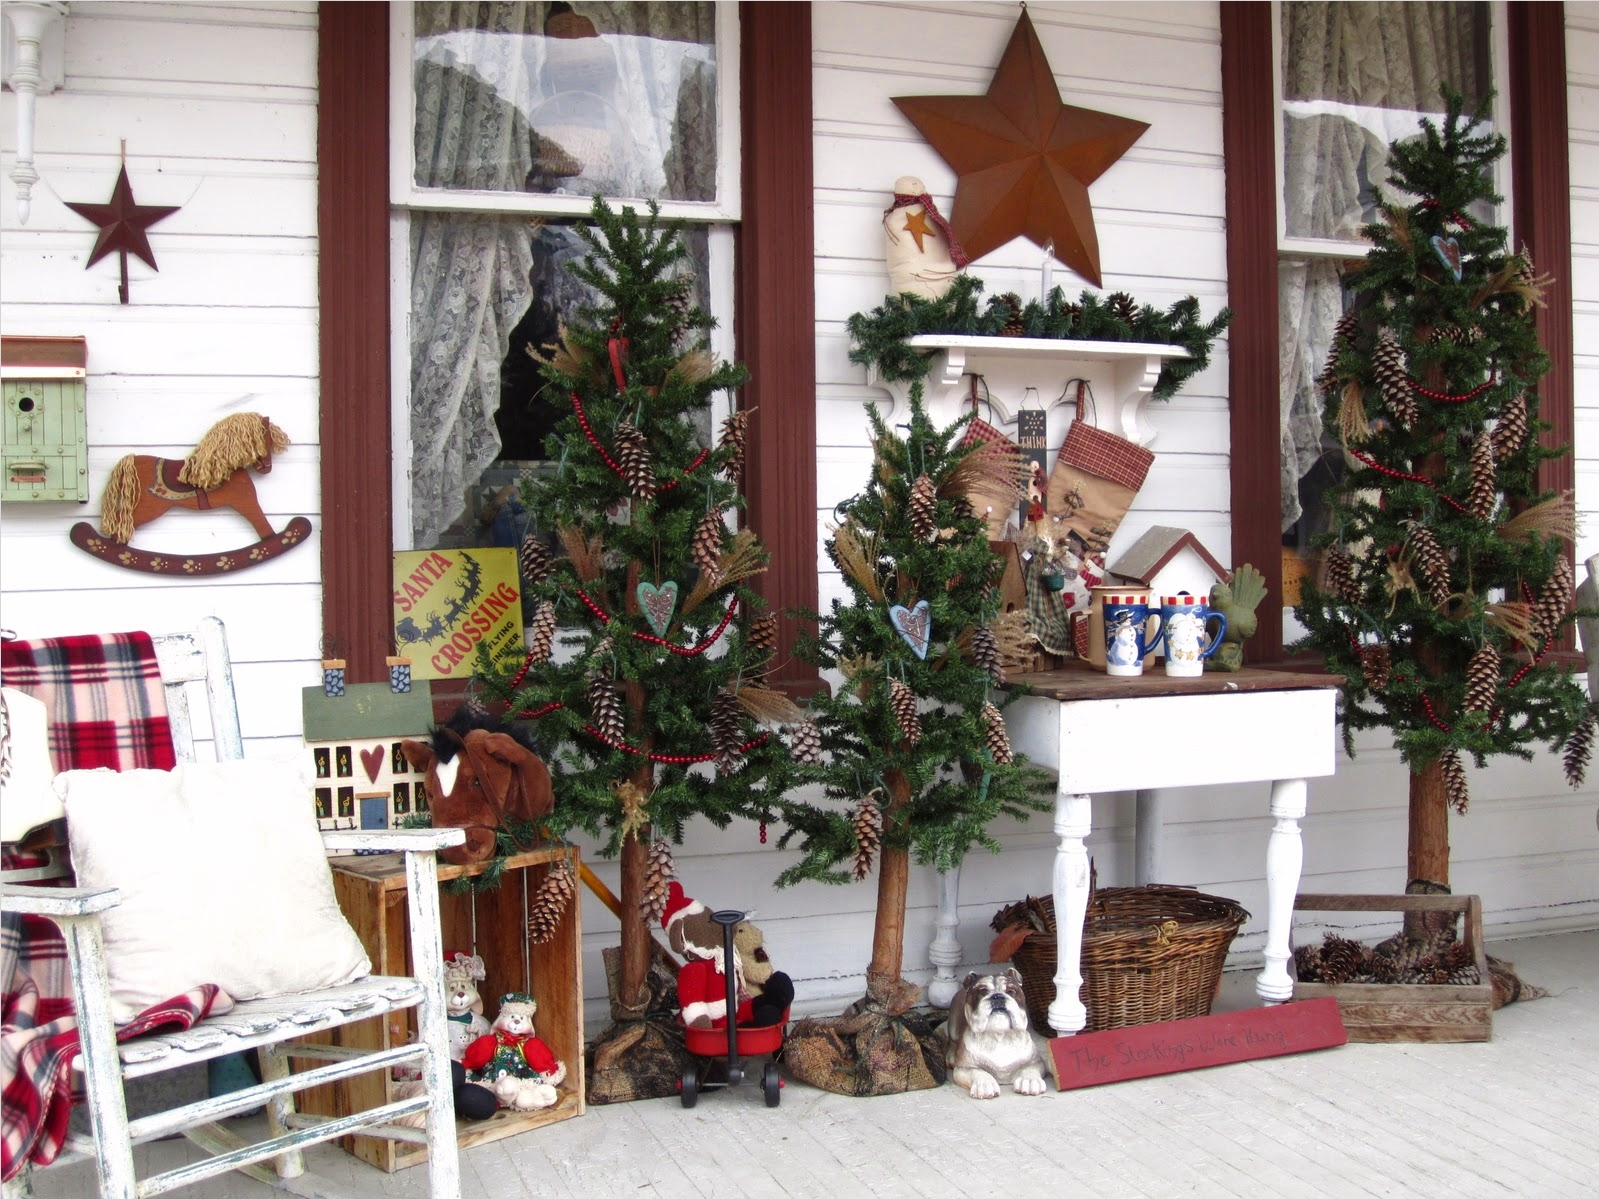 42 Stunning Country Christmas Centerpieces Ideas Ideas 75 Suesjunktreasures Rustic Country Christmas On My Front Porch 5